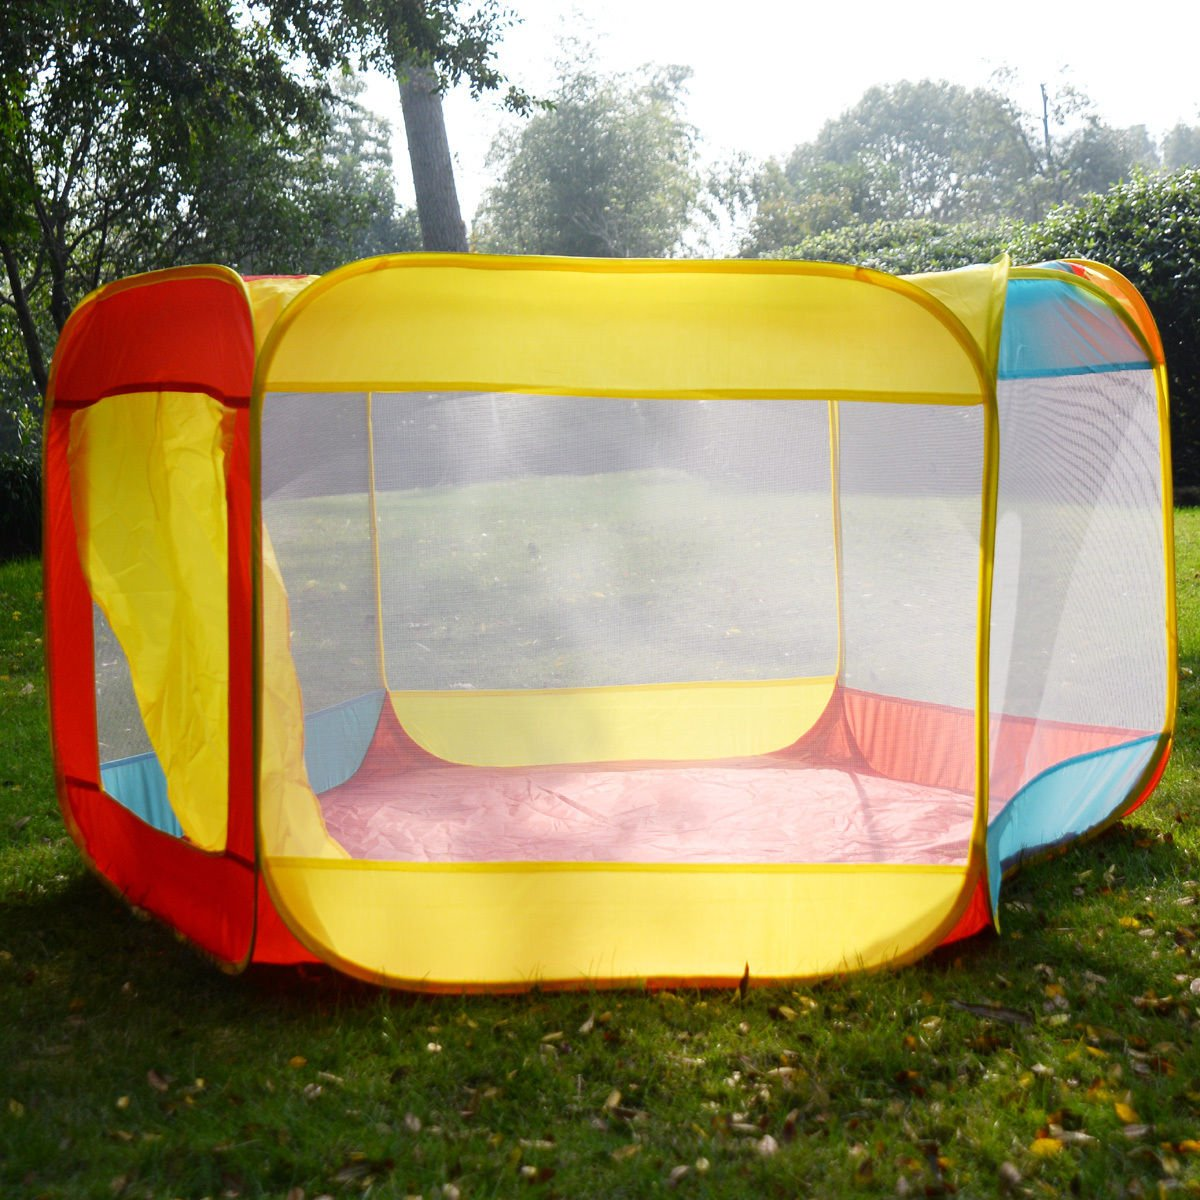 Folding Portable Children's Play Yard Playpen With Travel Bag Indoor/Outdoor Used (US Stock)